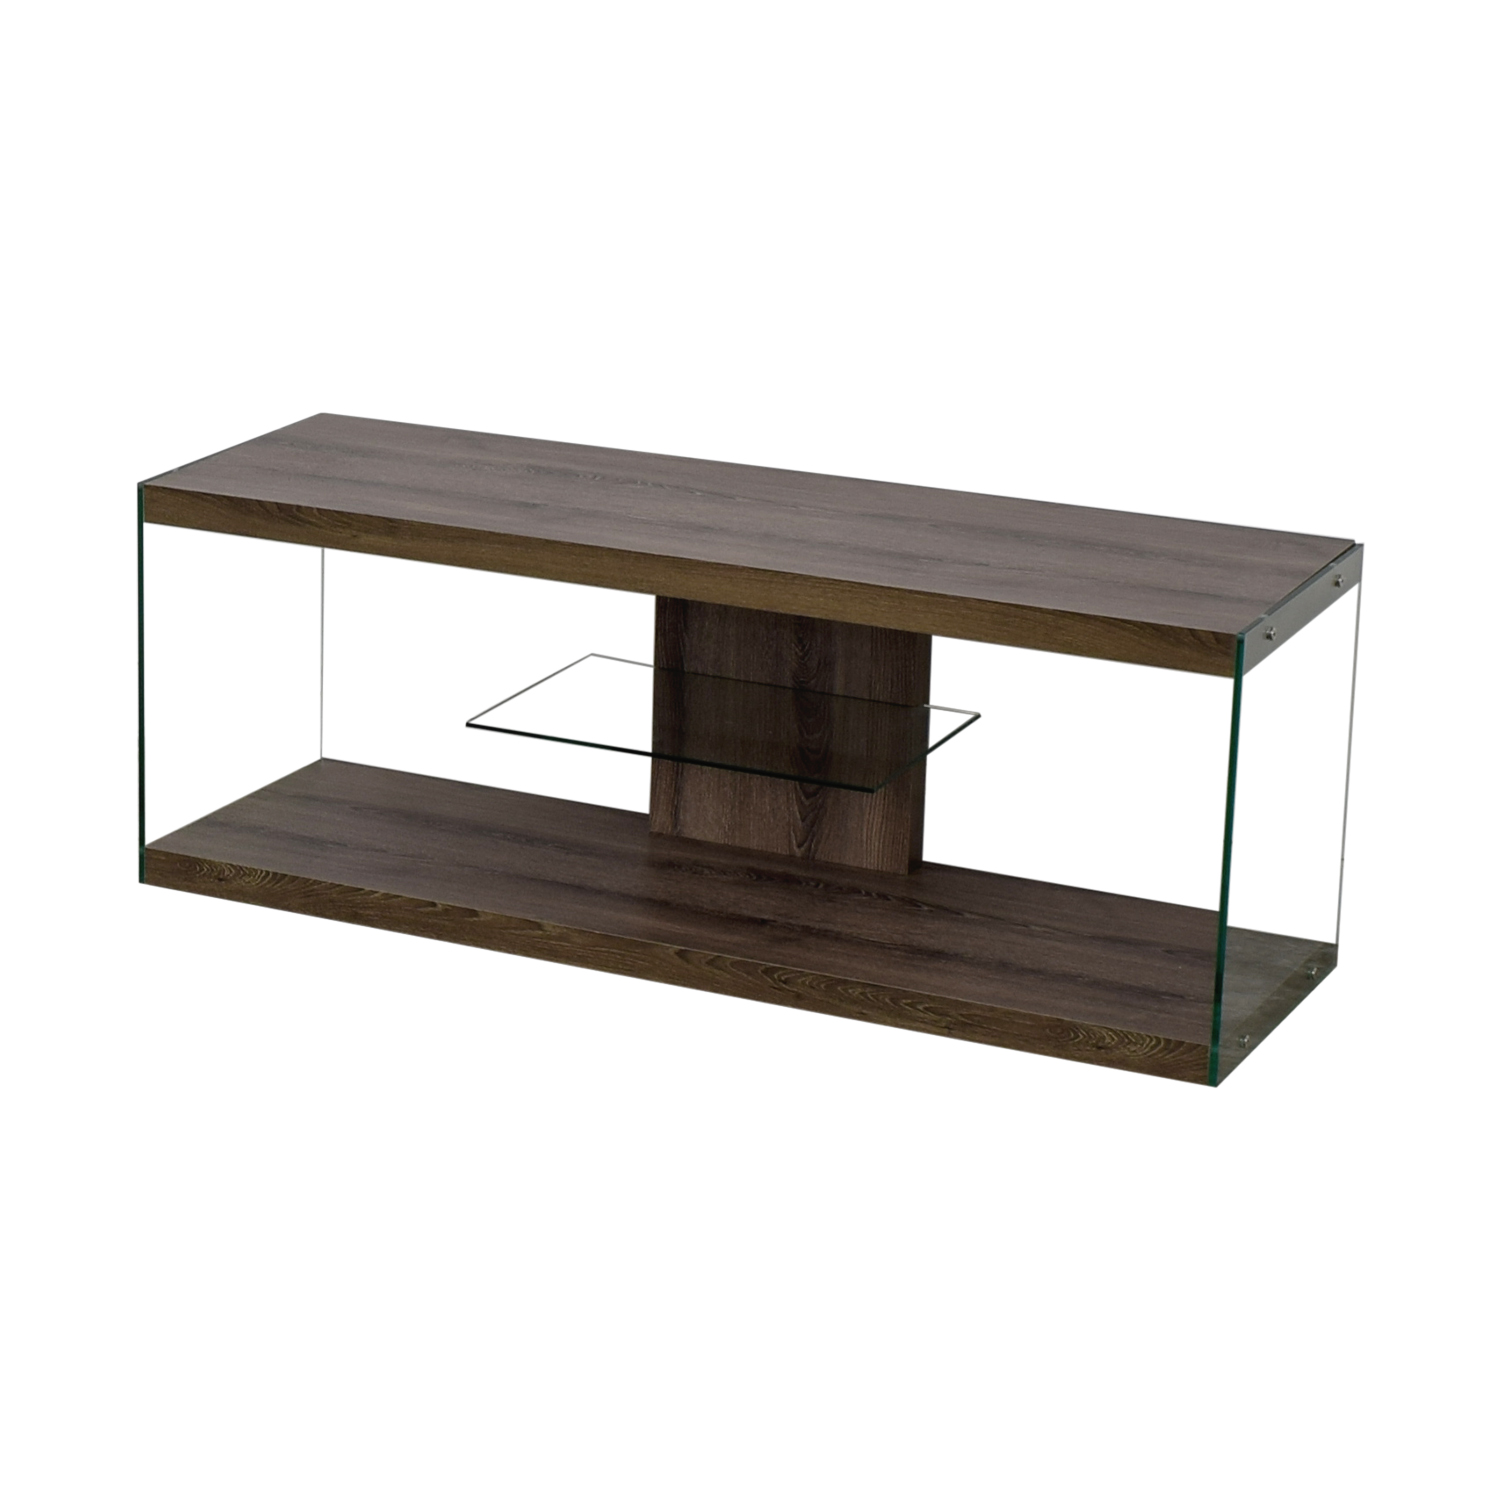 Monarch Specialties Monarch Specialties Wood and Metal TV Stand second hand